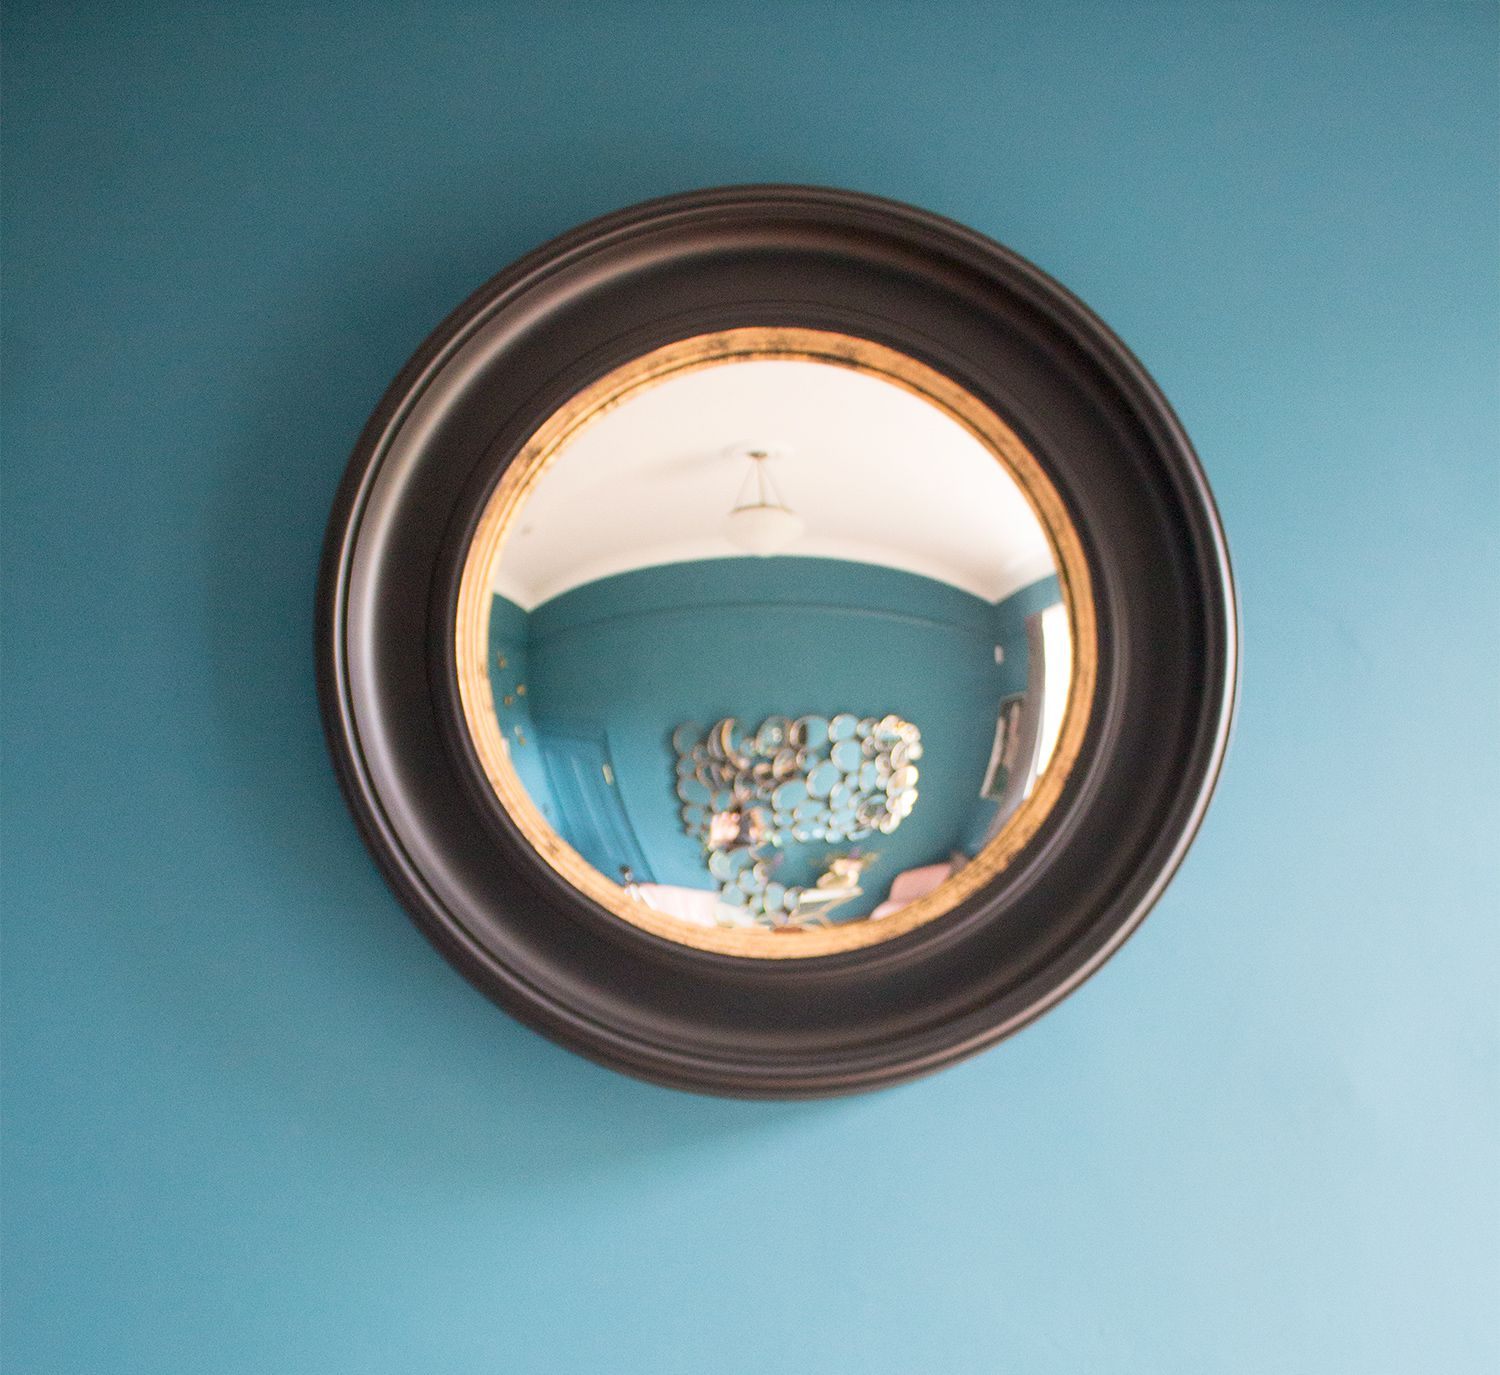 A close up photo of the black round mirror in the teal painted room.